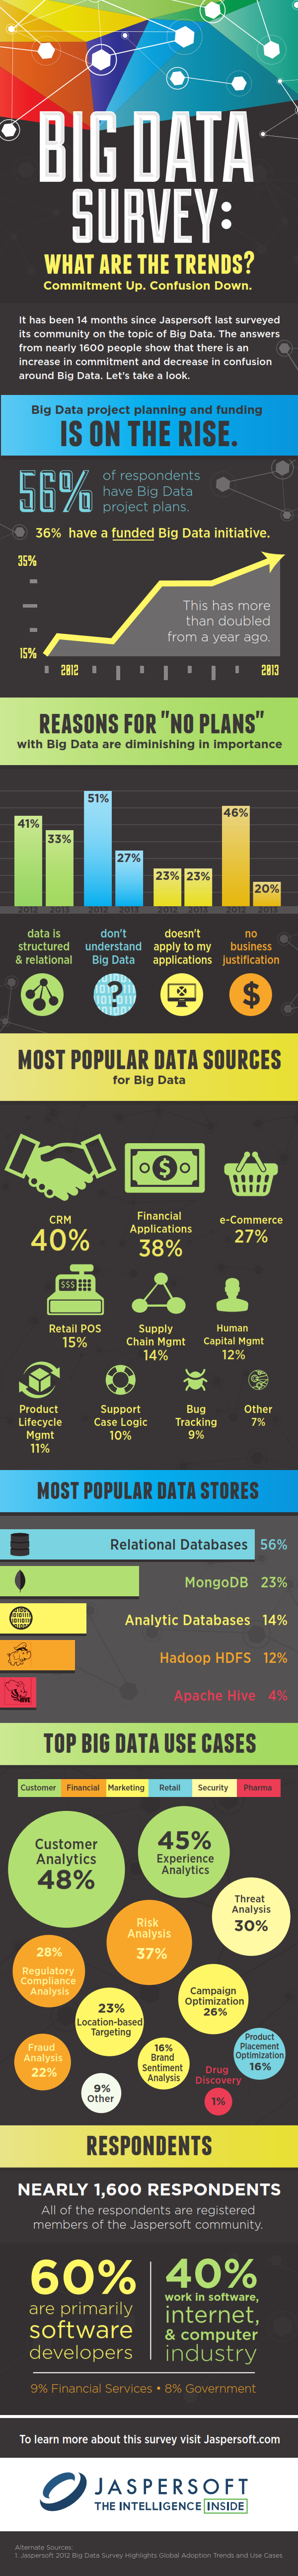 Big Data Survey Infographic FINAL_001